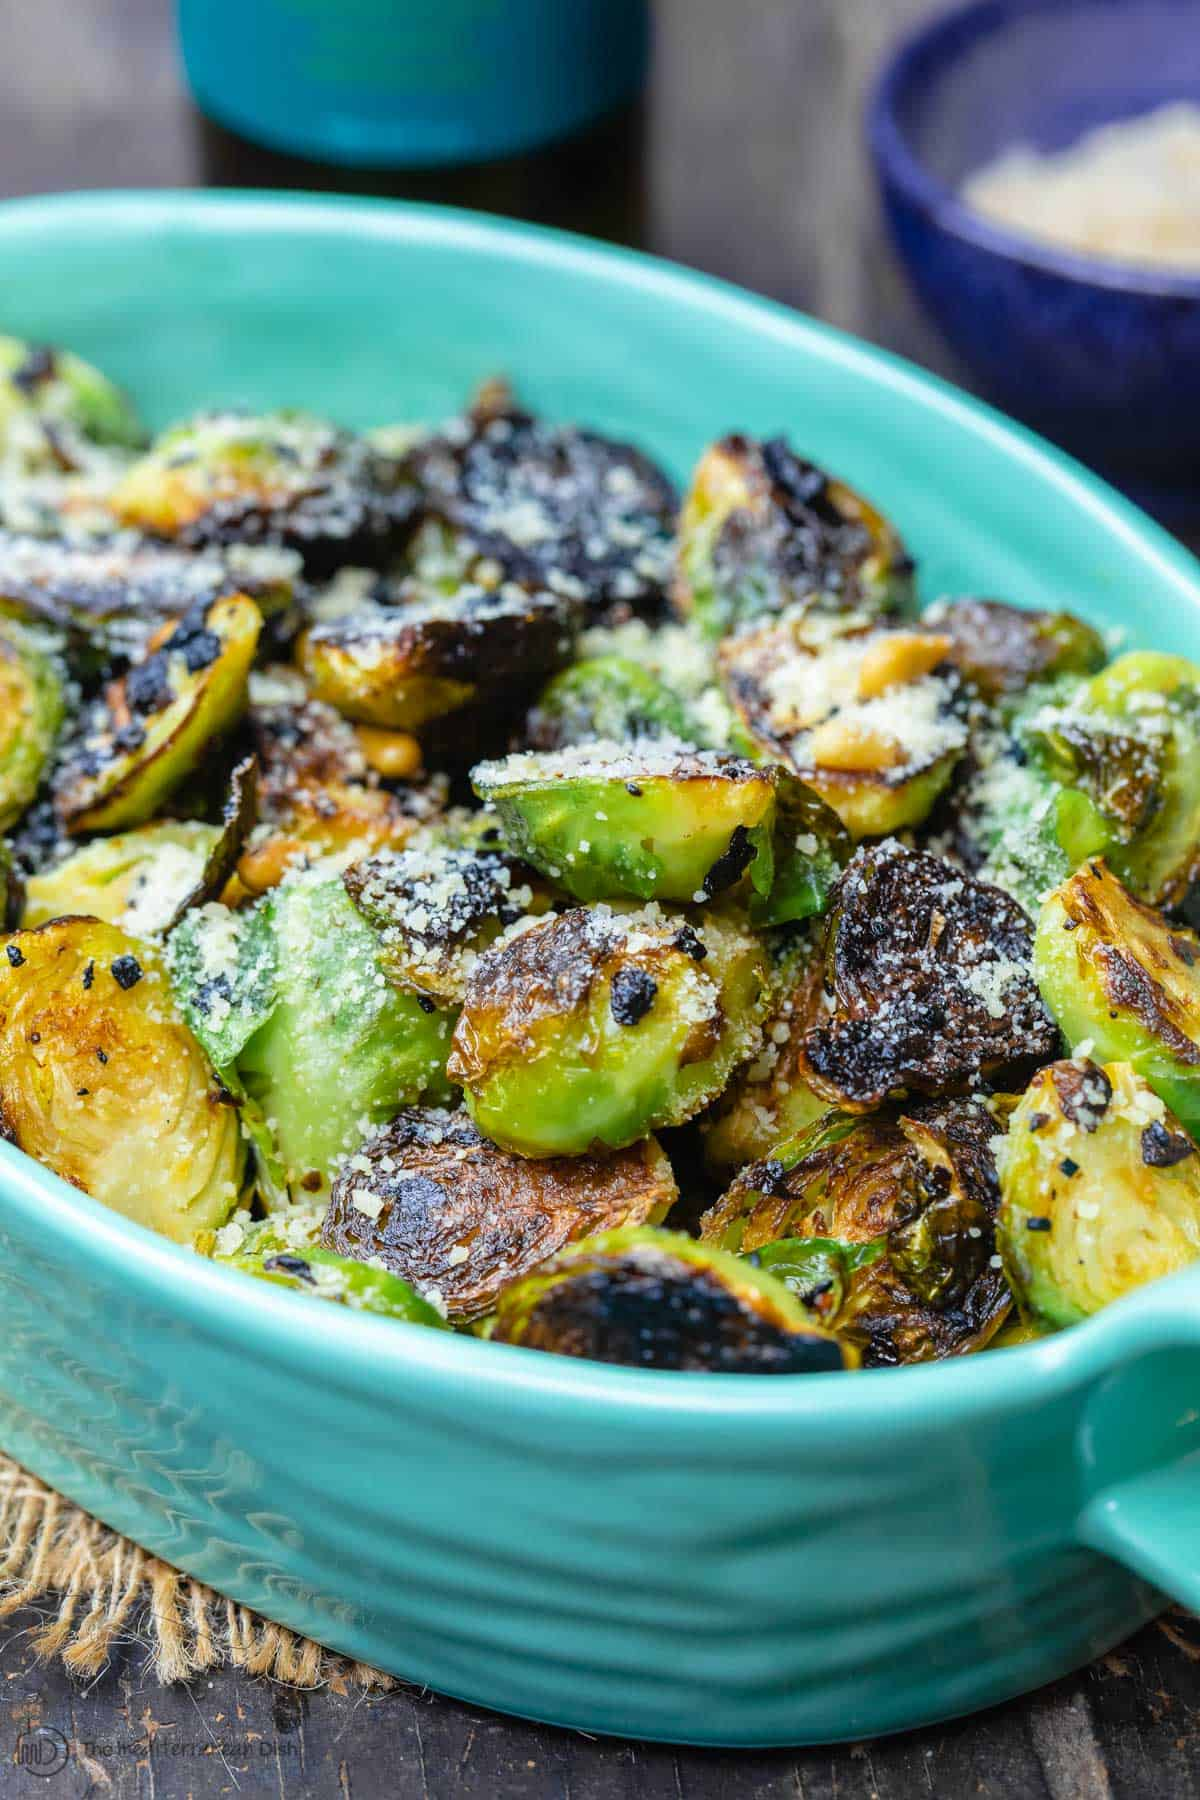 Fried brussels sprouts in serving dish